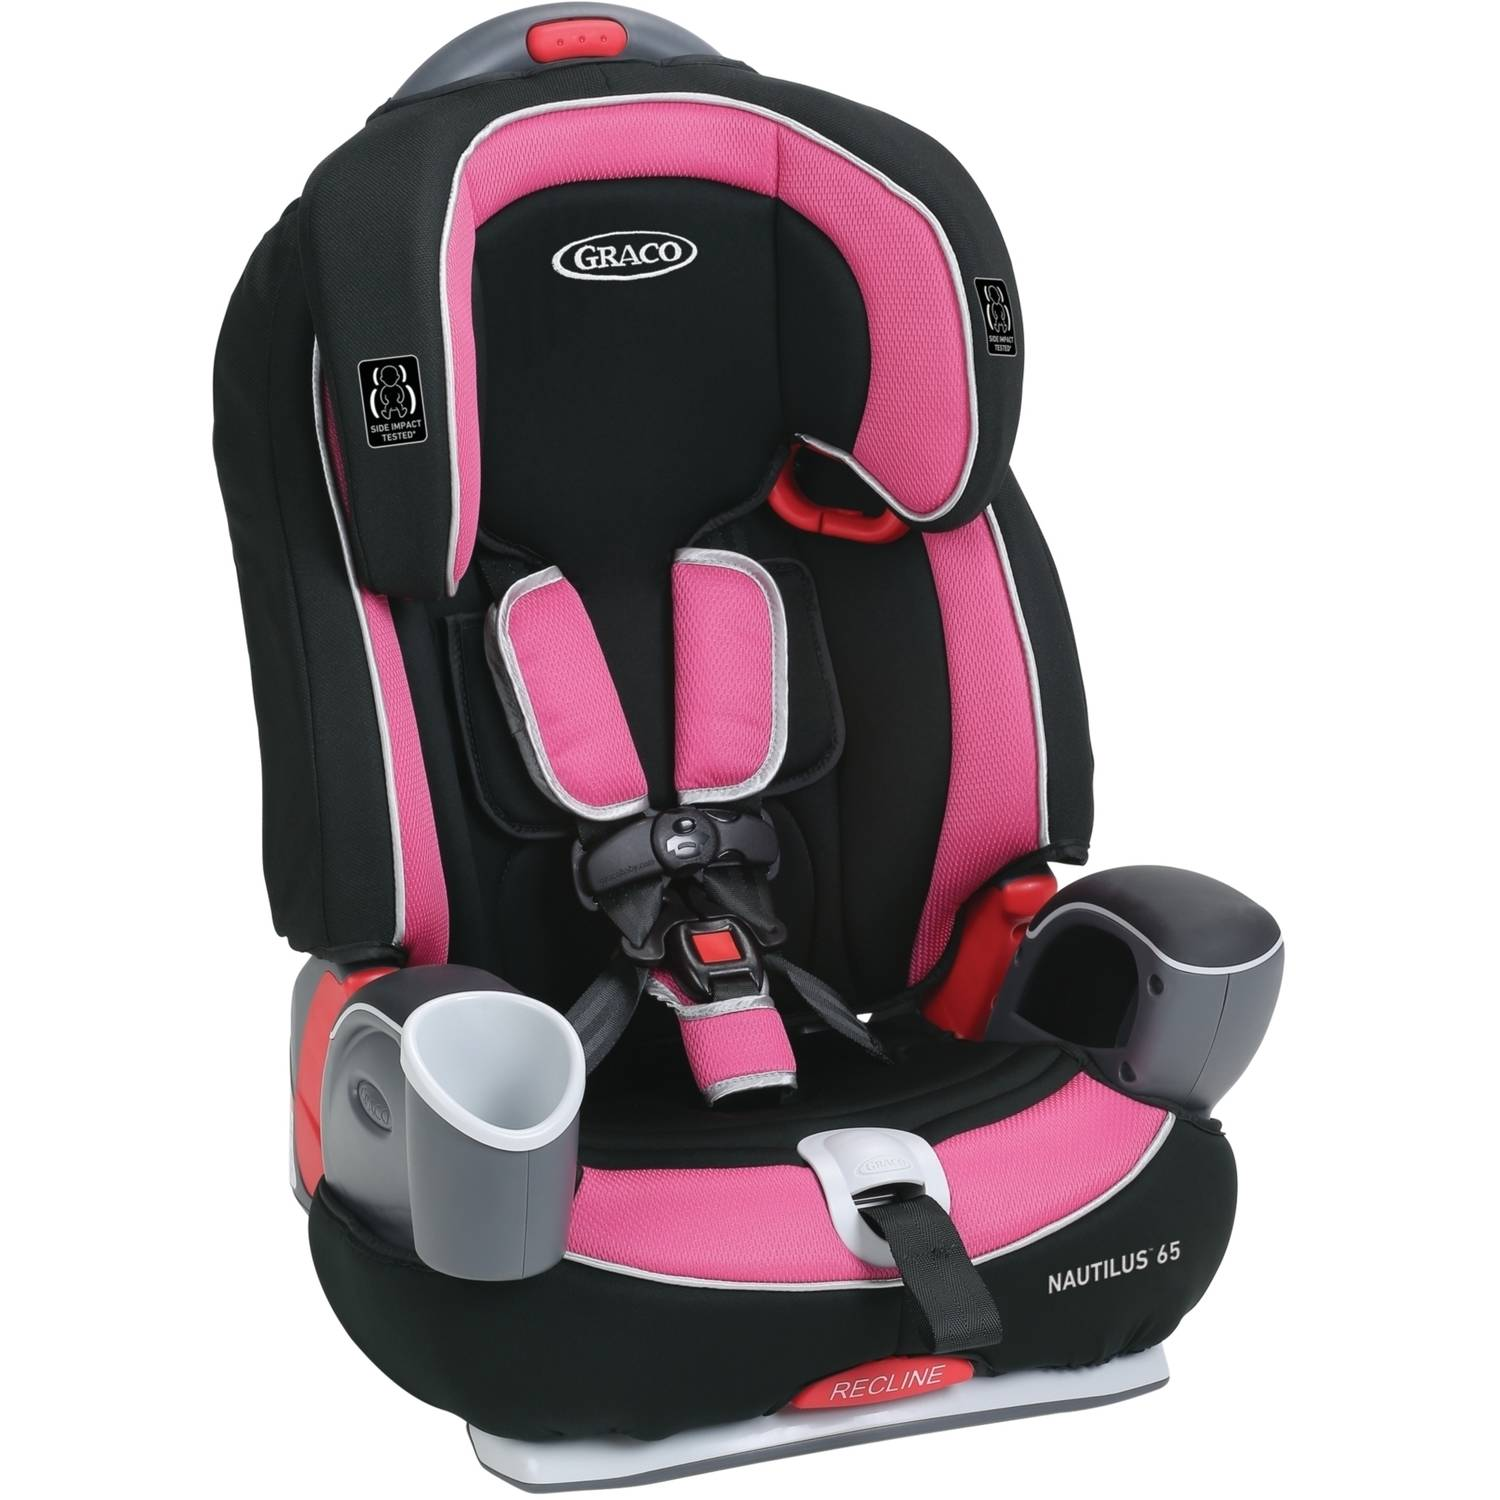 Details About Graco Nautilus 65 3 In 1 Multi Use Harness Booster Car Seat Choose Your Patter